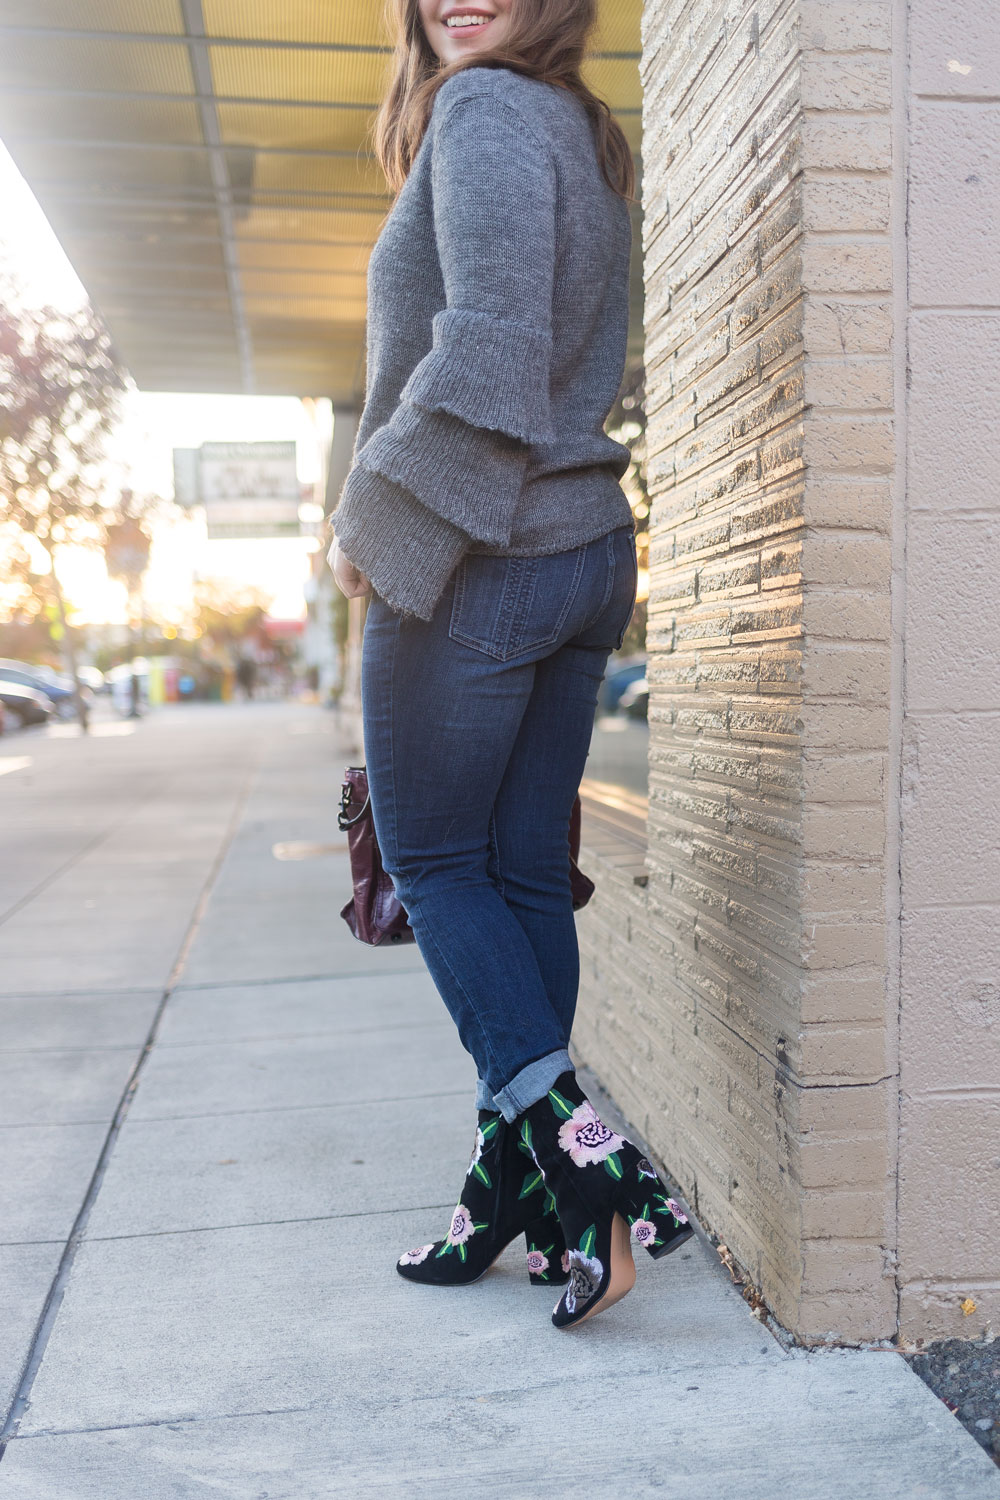 Fall Fashion Uniforms Start with Riders by Lee Jeans // Hello Rigby Seattle Fashion Blog